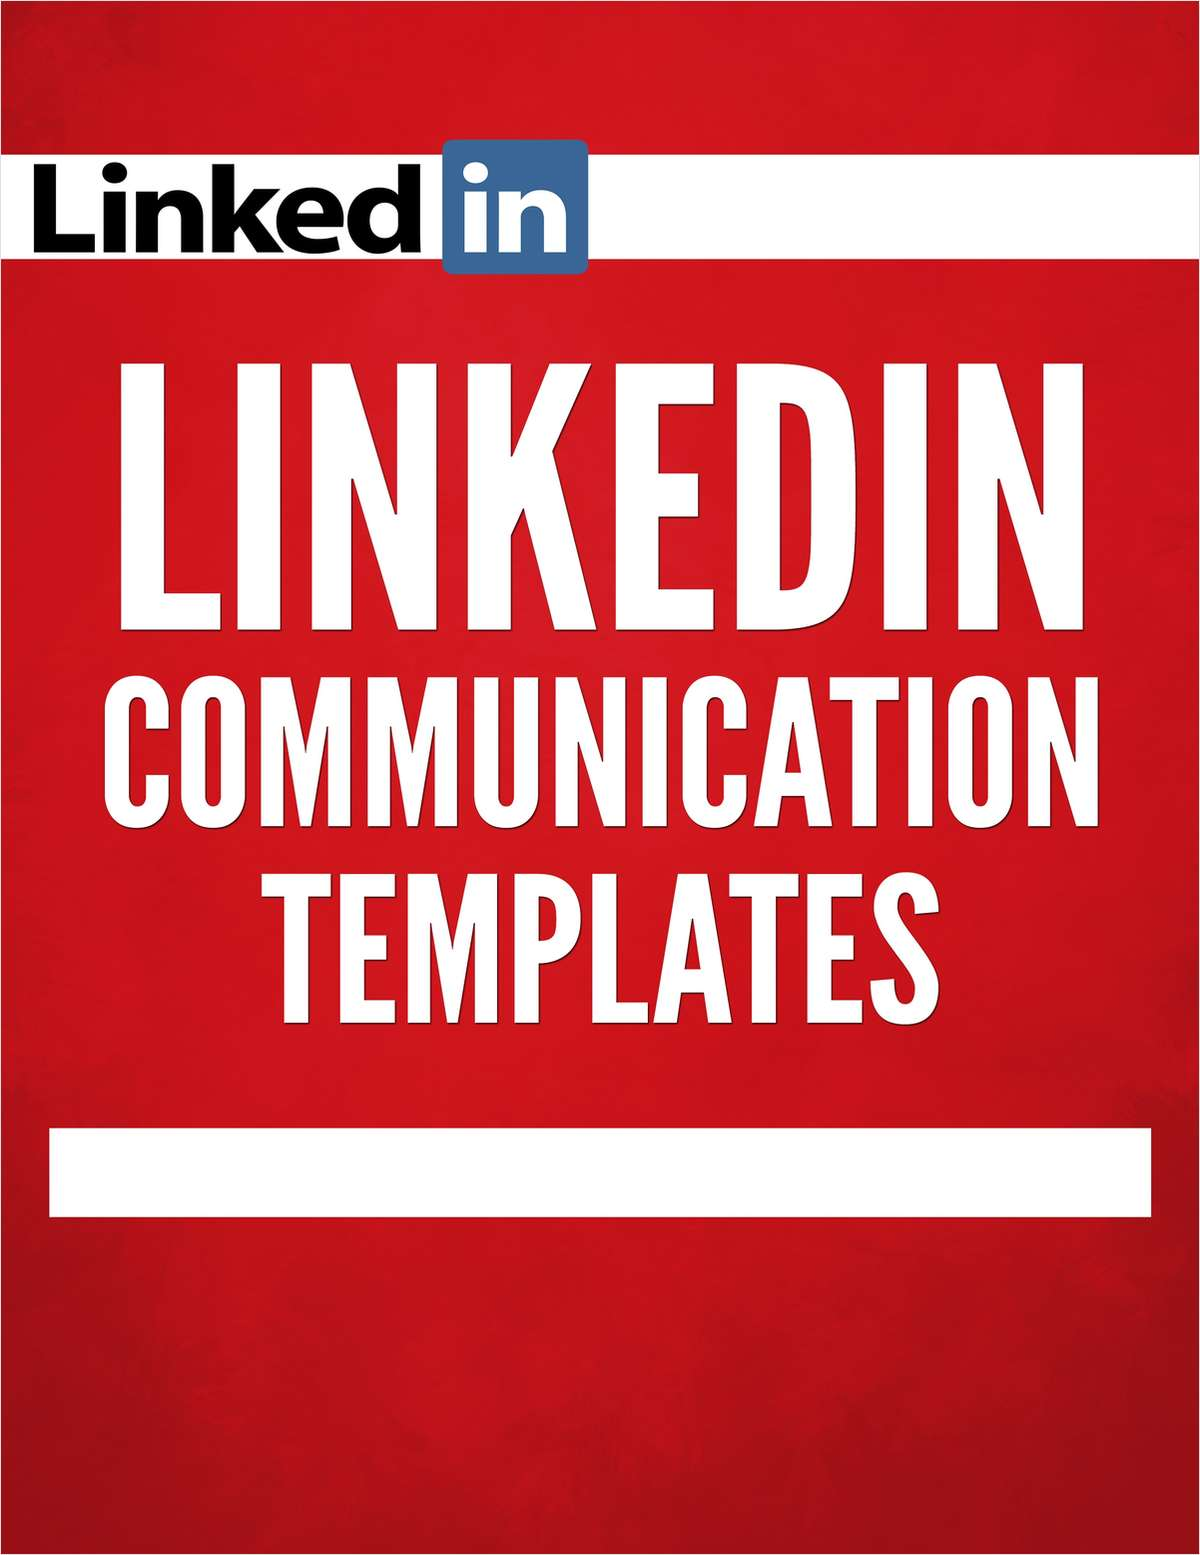 LinkedIn Communication Templates